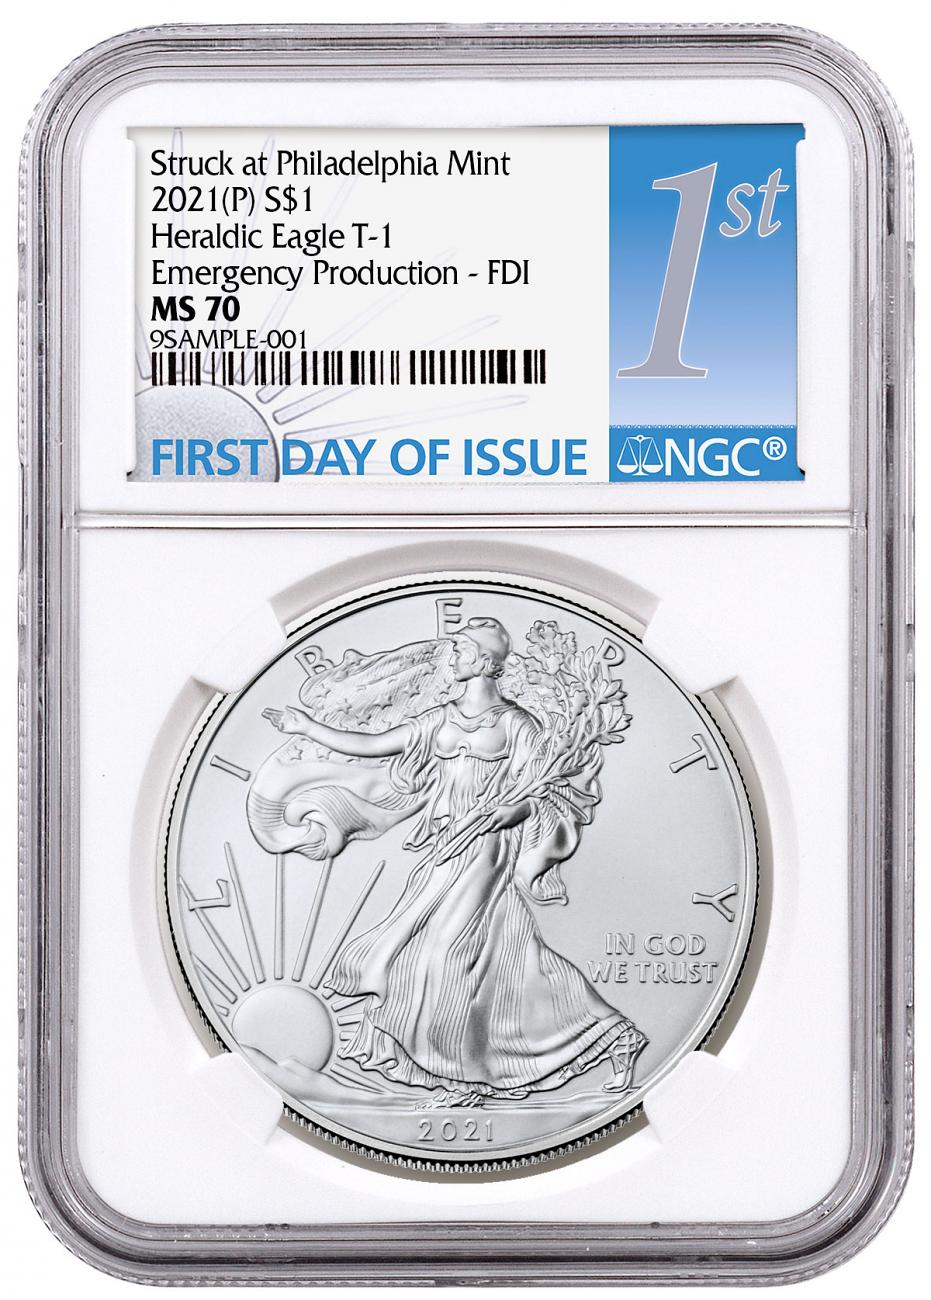 2021-(P) American Silver Eagle Struck at Philadelphia Mint - Emergency Production T-1 NGC MS70 FDI 1st Day Label